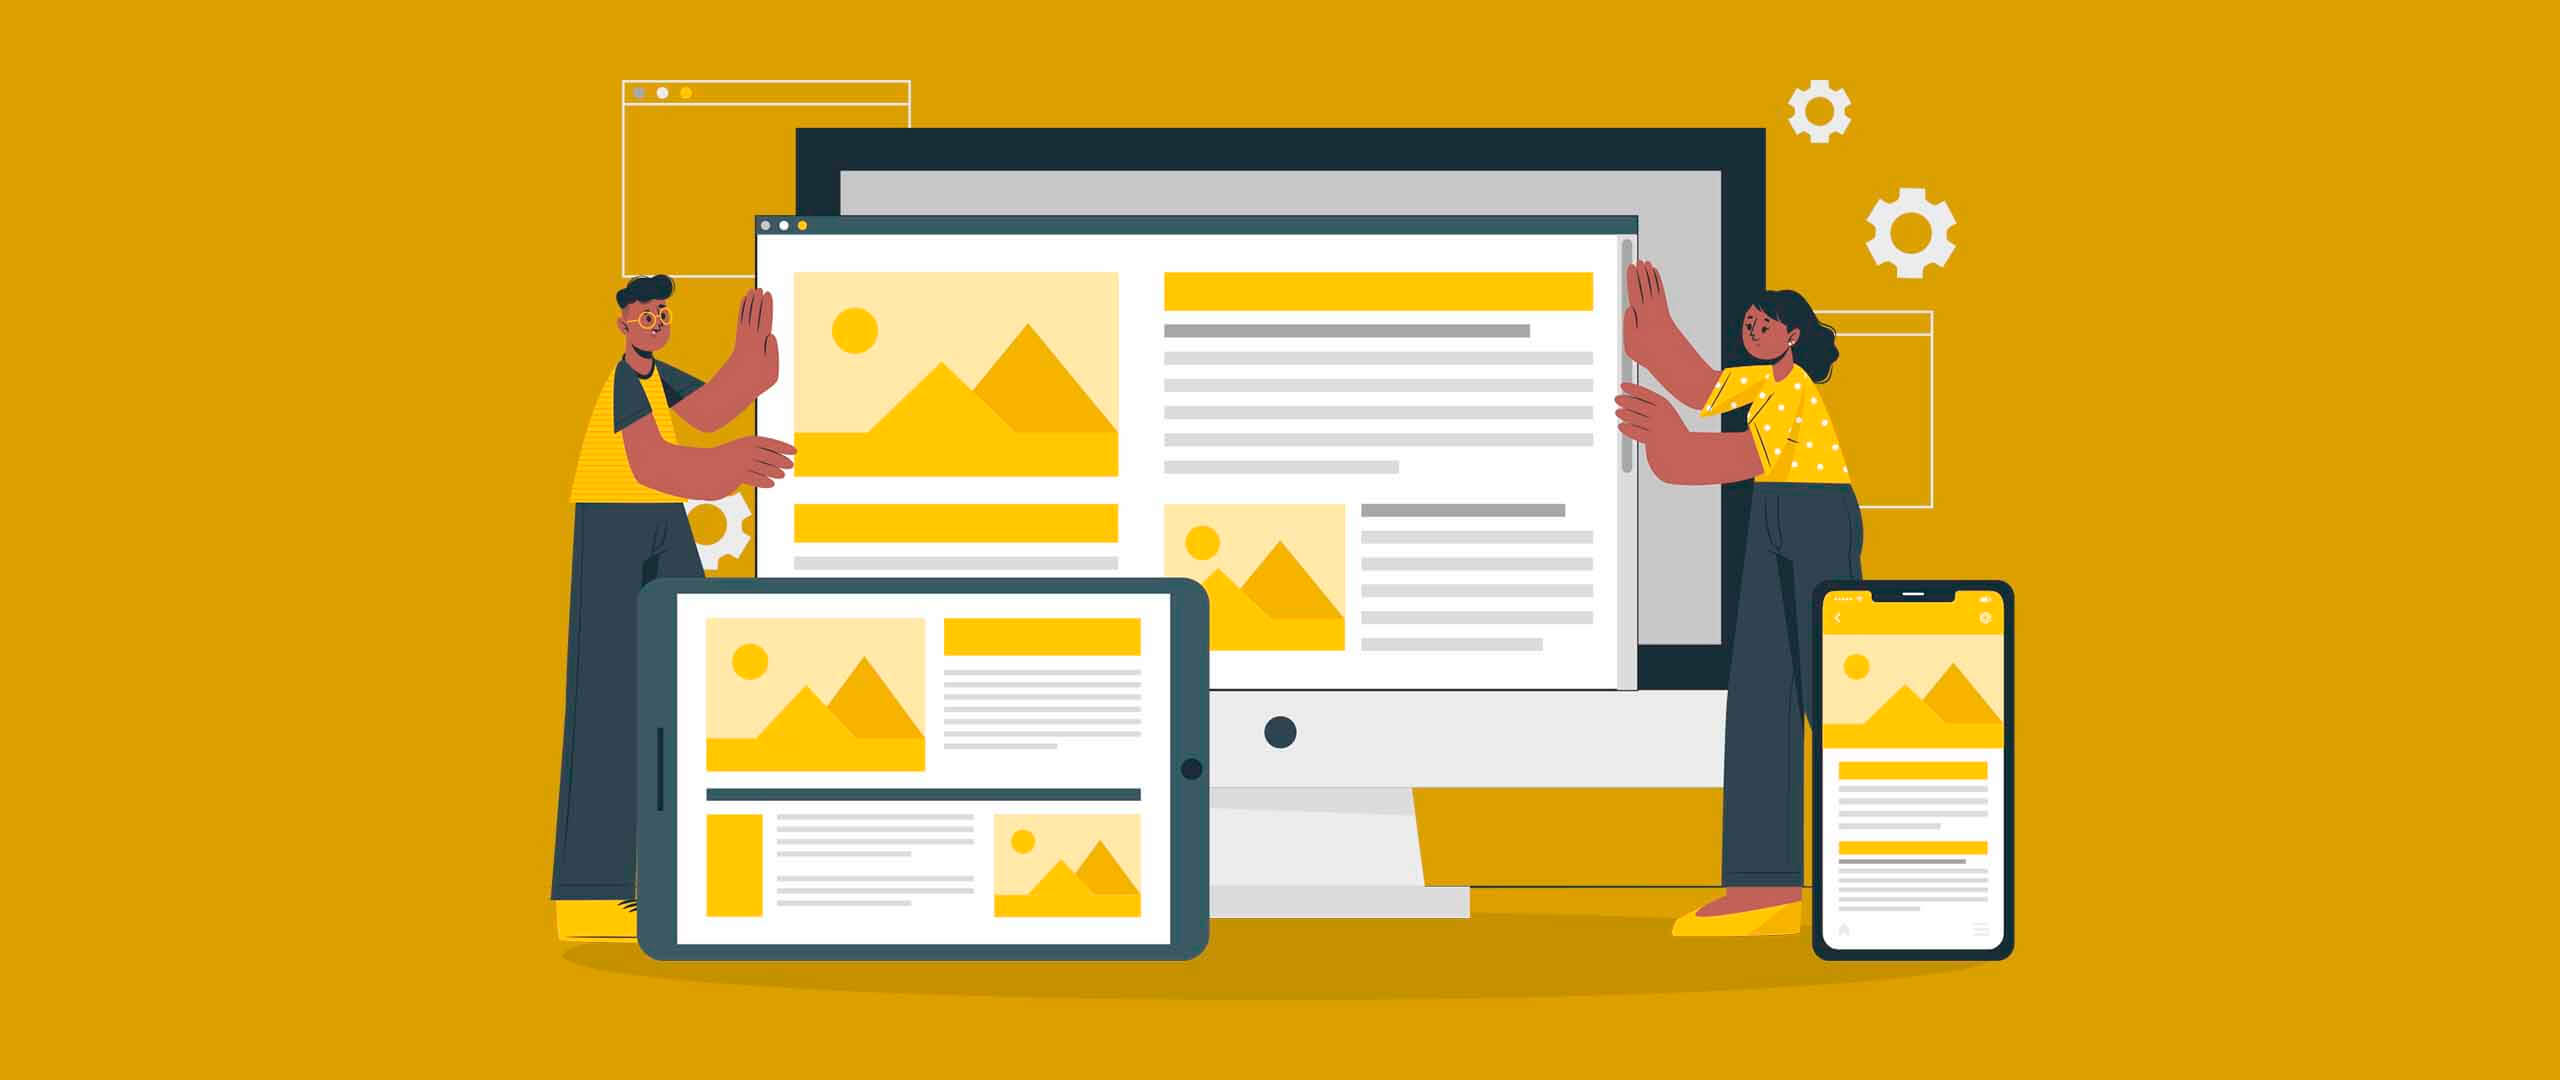 How To Properly Use Images in Web Design: 7 Tips